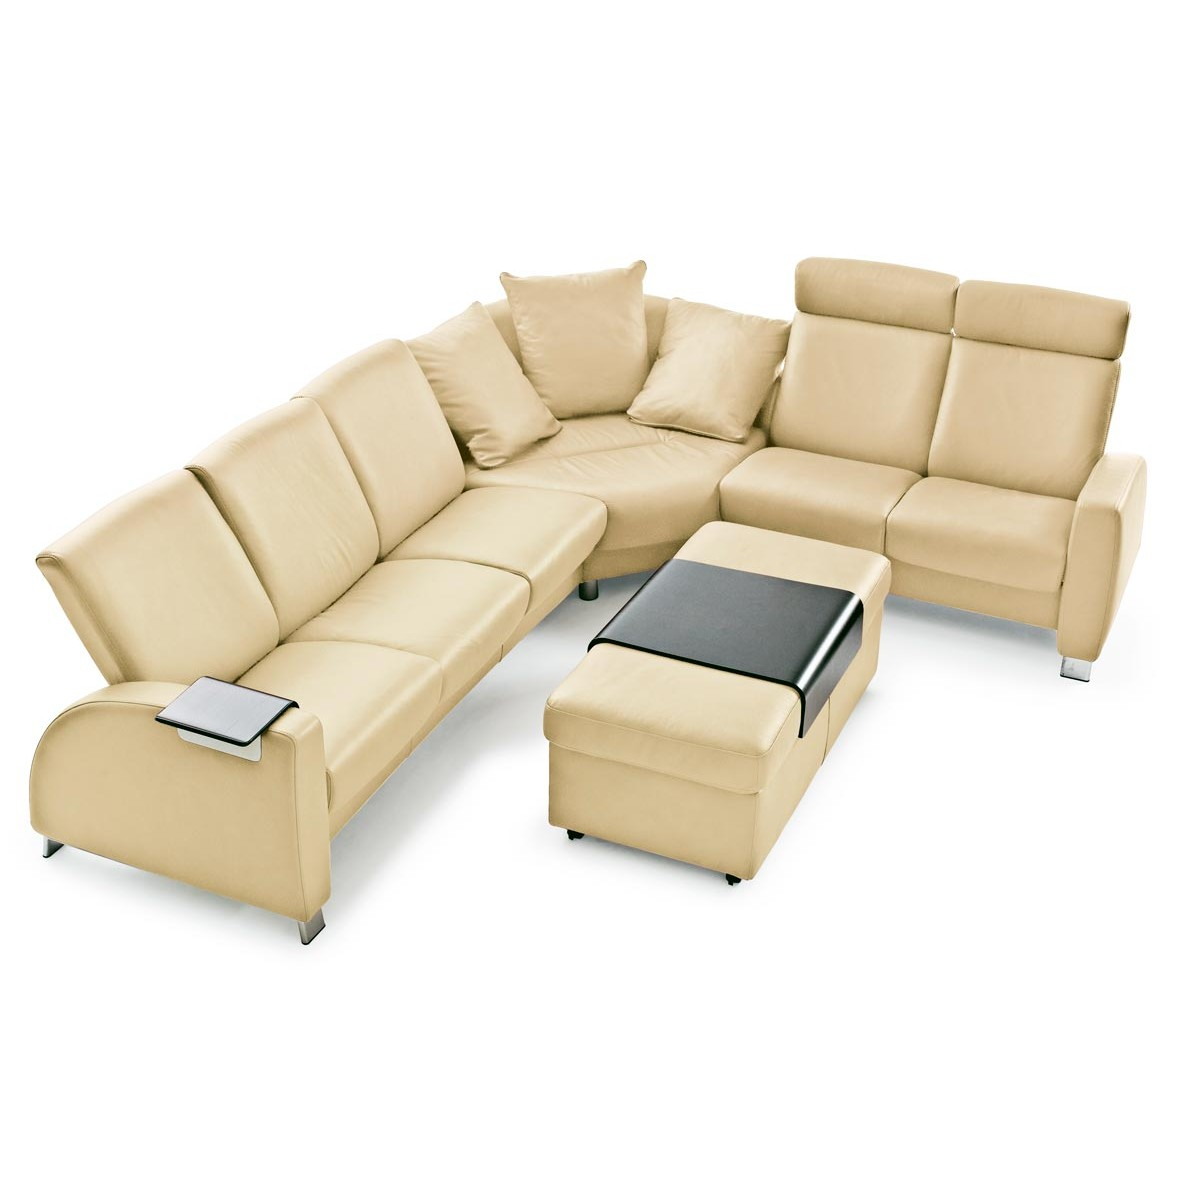 Stressless Wave Sofa Reviews Stressless Sofas Taraba Home Review